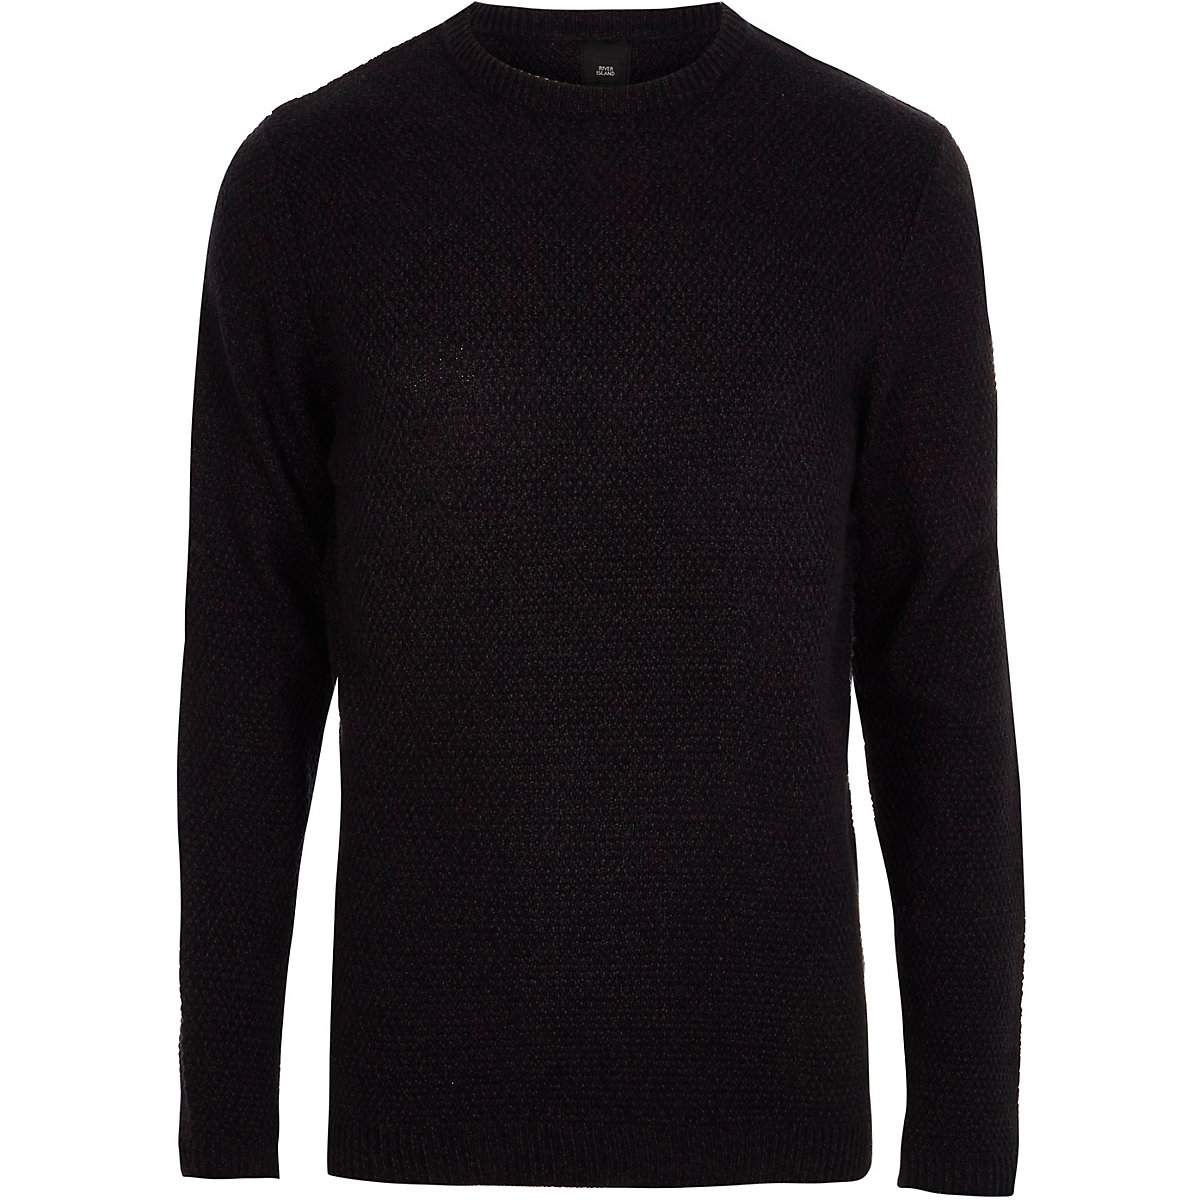 Big and Tall navy textured crew neck sweater